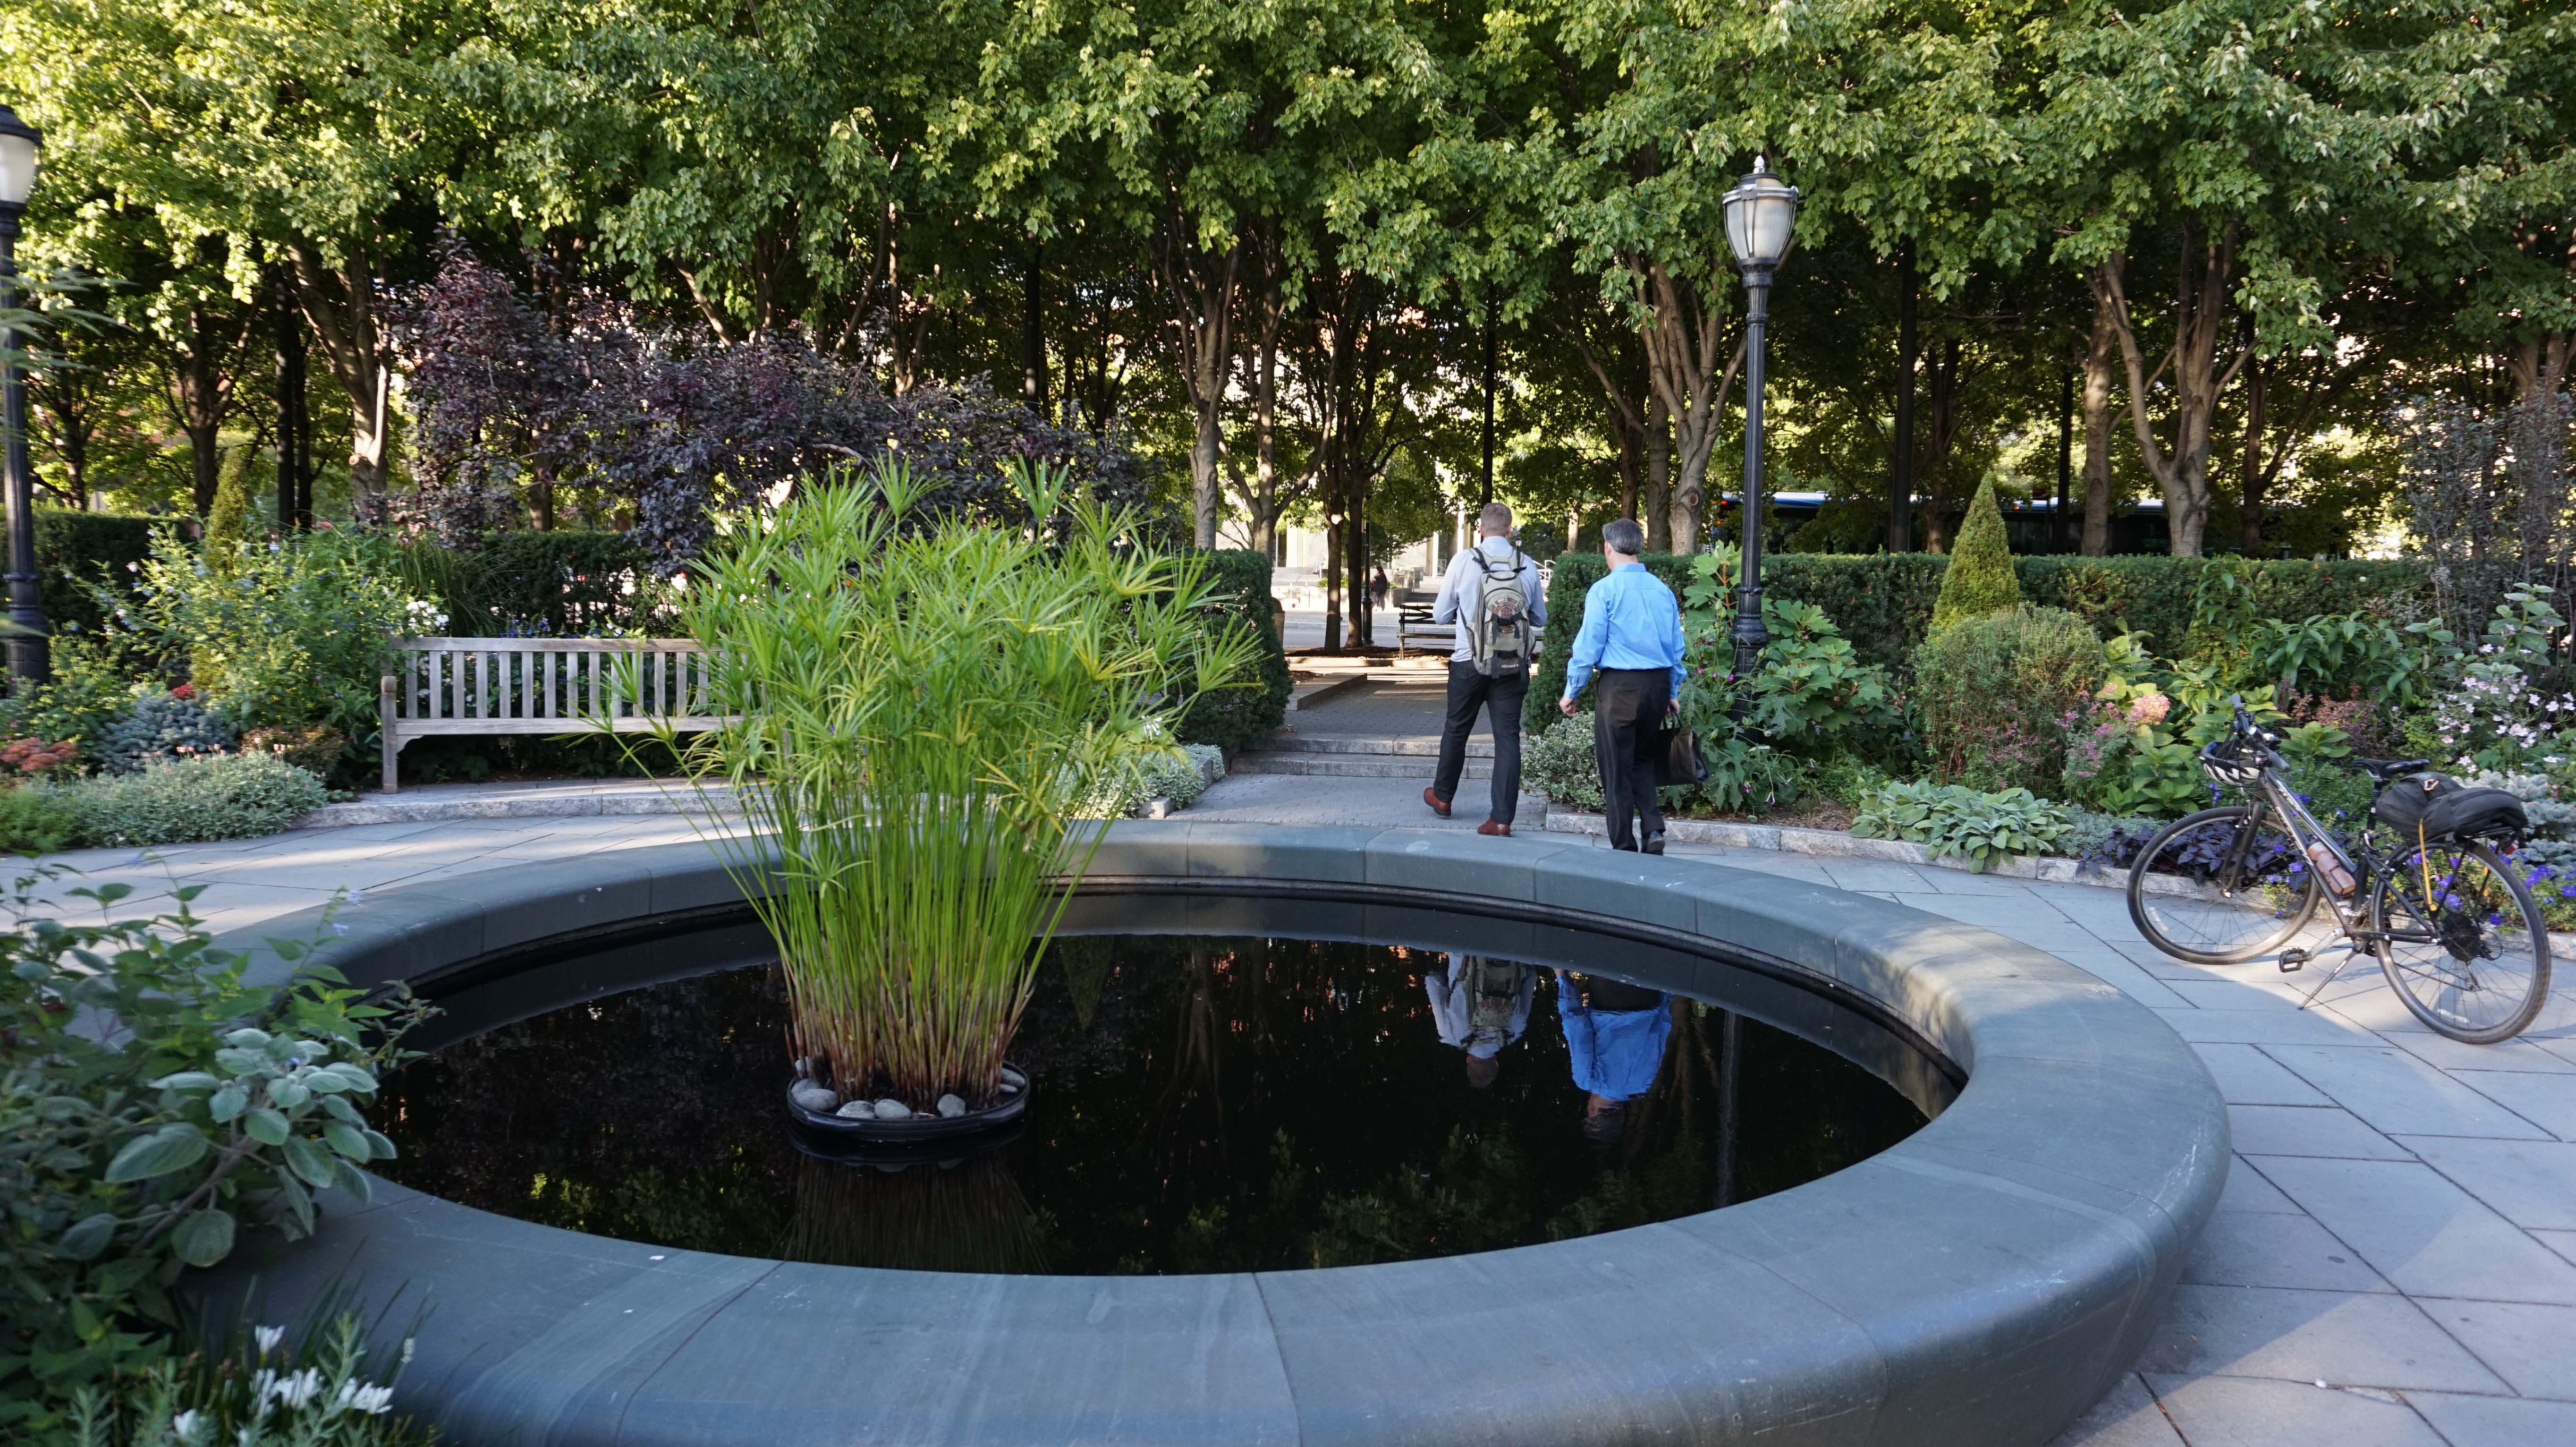 Bpca is looking to hire director of horticulture batterypark tv we inform - Reflecting pool ...